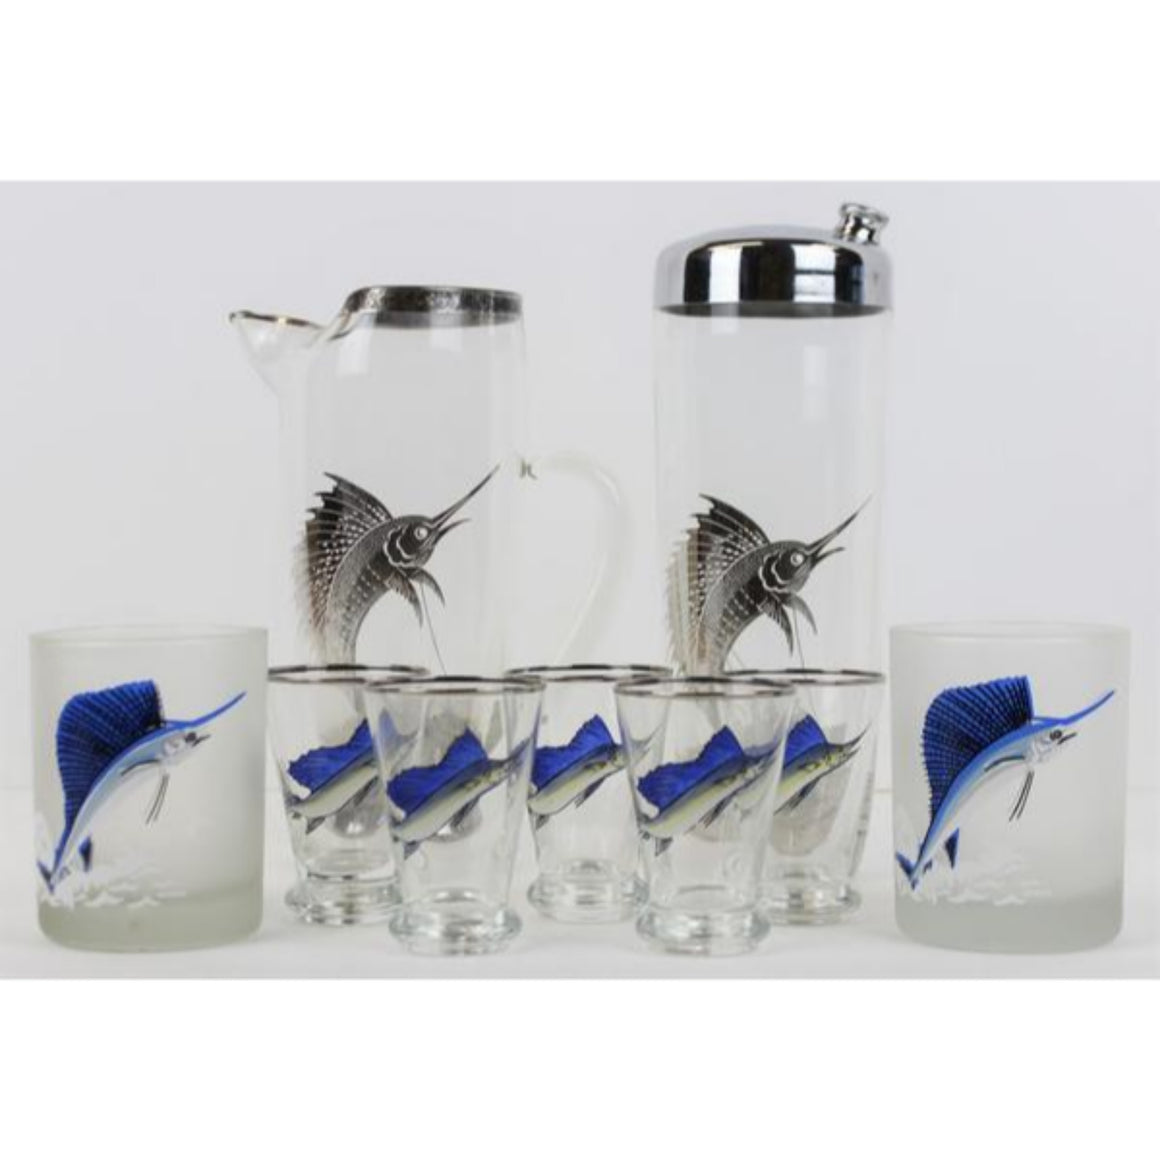 Set of 5 Hand-Painted Sailfish Shot Glasses, Pair of Nina Sailfish Frosted Old-Fashioned Glasses, 1 Silver Sailfish Pitcher, & 1 Silver Sailfish Glass Cocktail Shaker